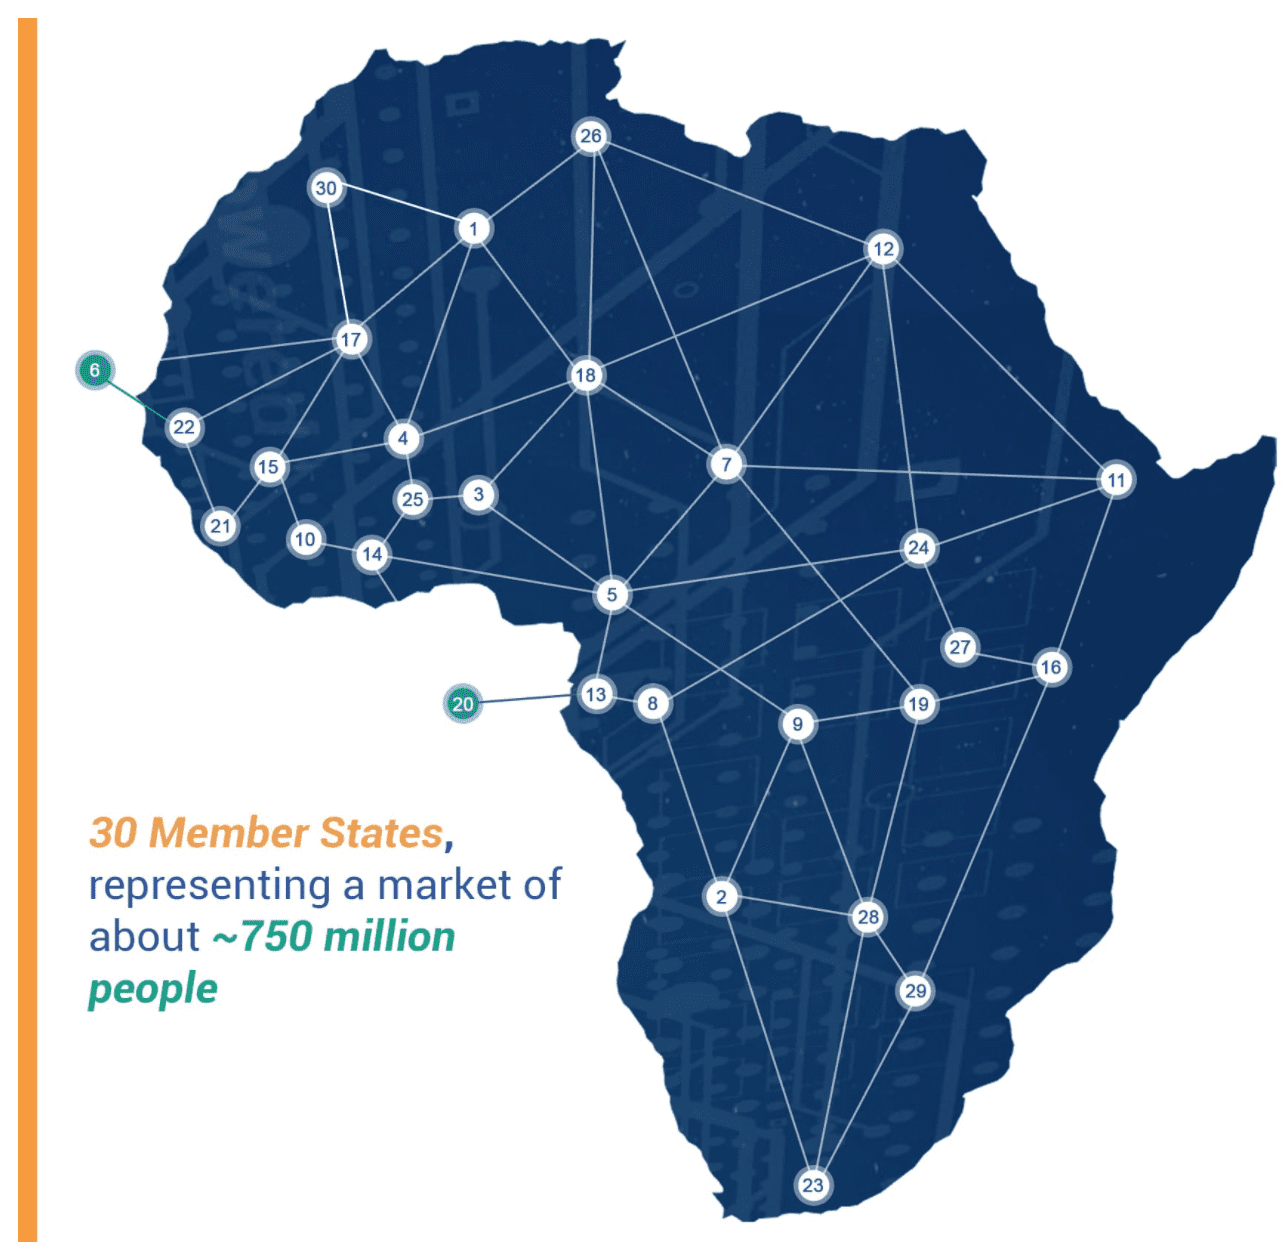 eNitiate | Smart Africa | The 30 Member States | 23 June 2020